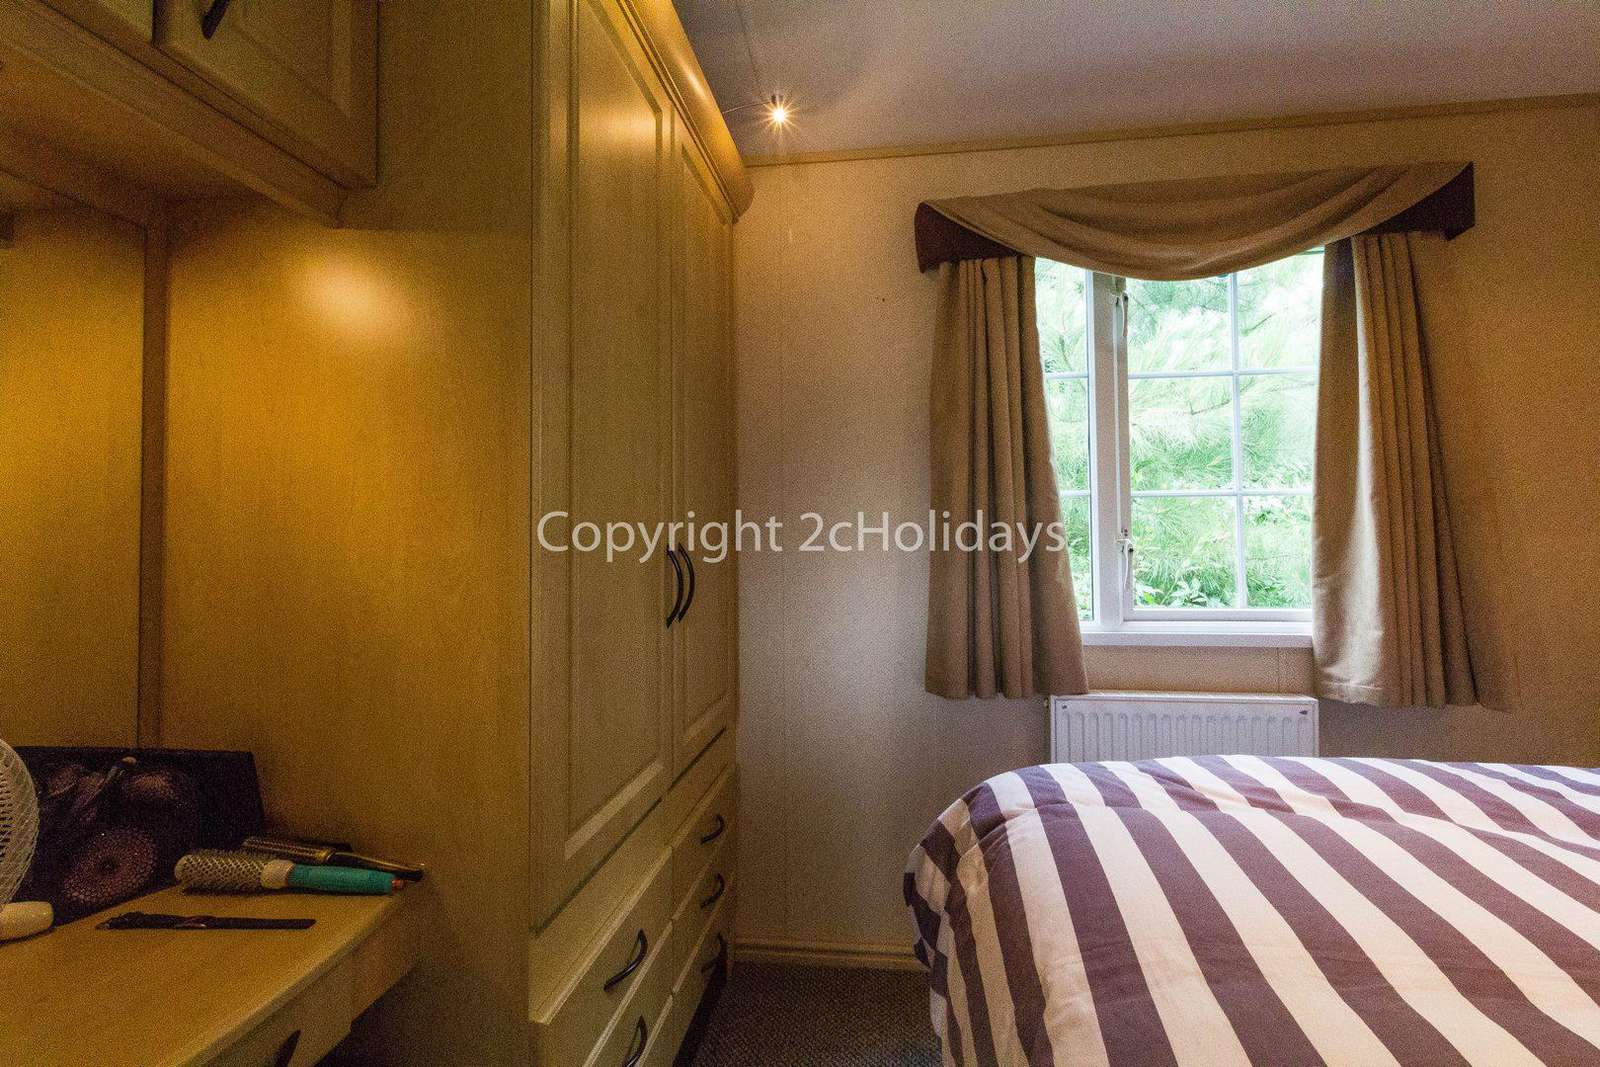 Great wardrobe space in this spacious caravan.